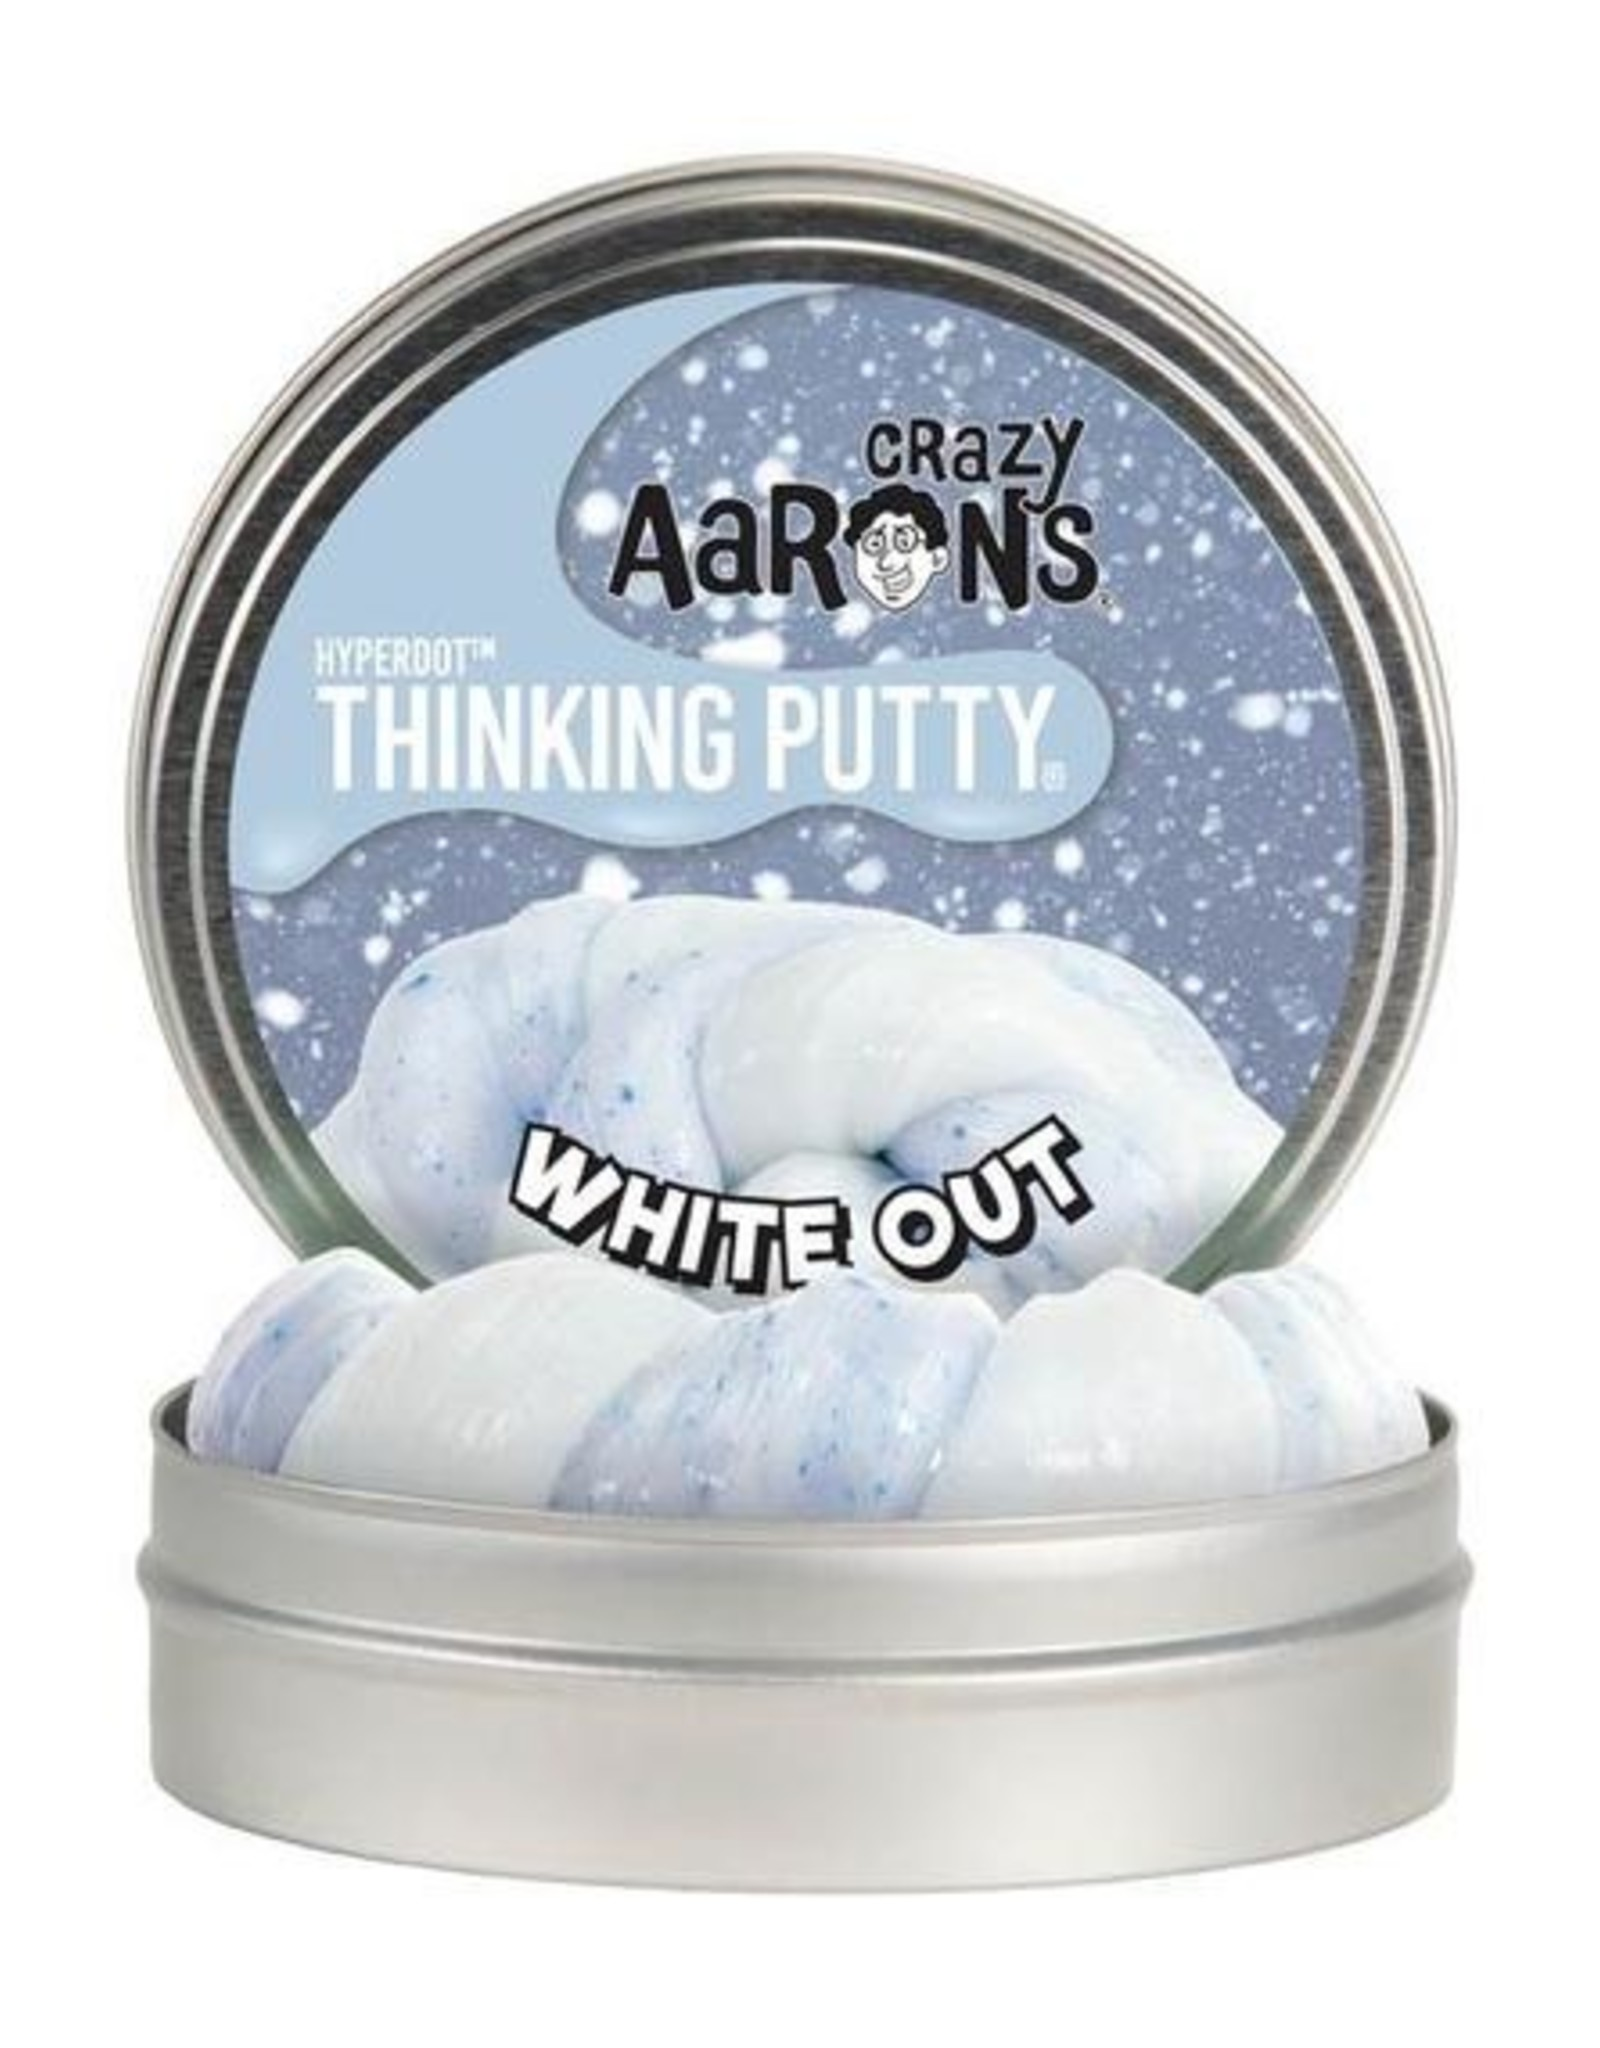 """Crazy Aaron's Thinking Putty Crazy Aaron's Hyperdot Putty 4"""" Tin White Out"""